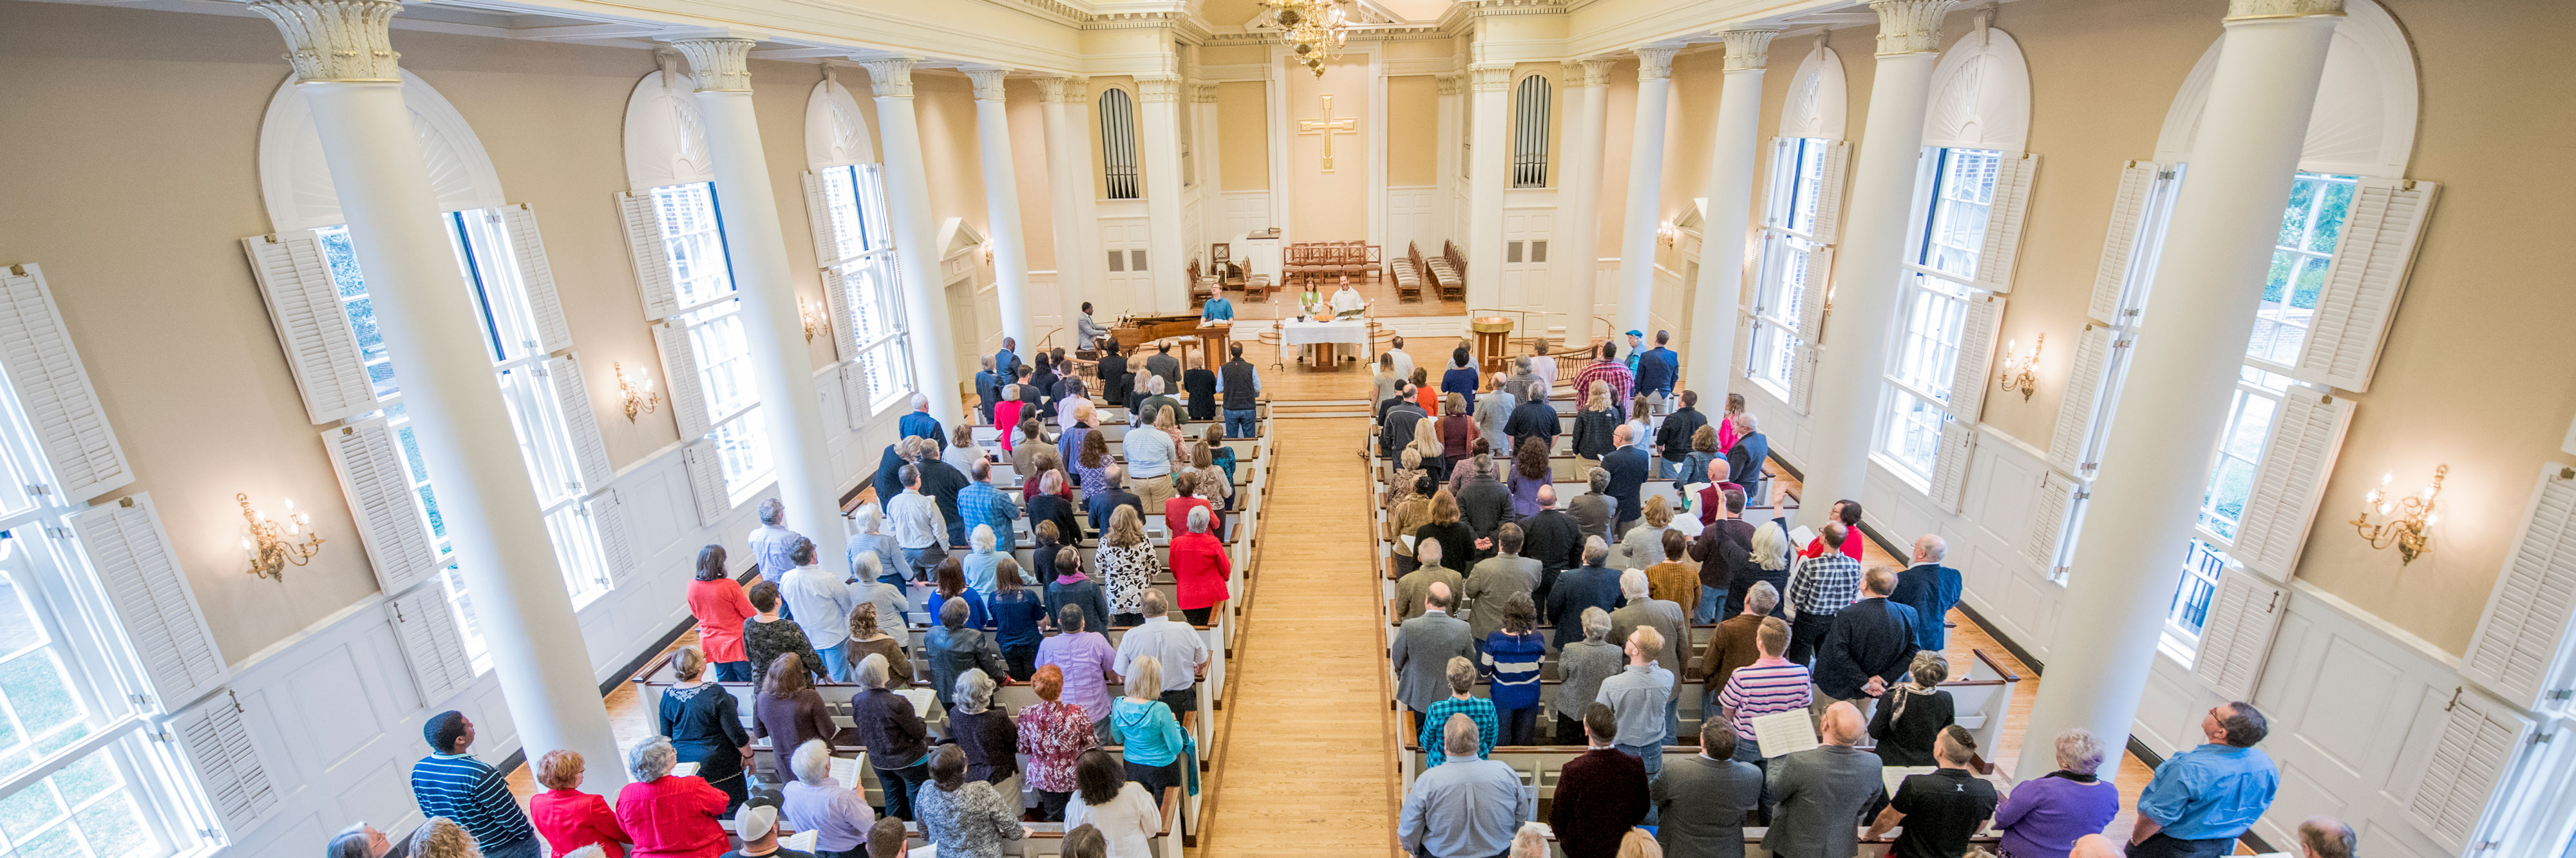 Perkins Chapel Worship